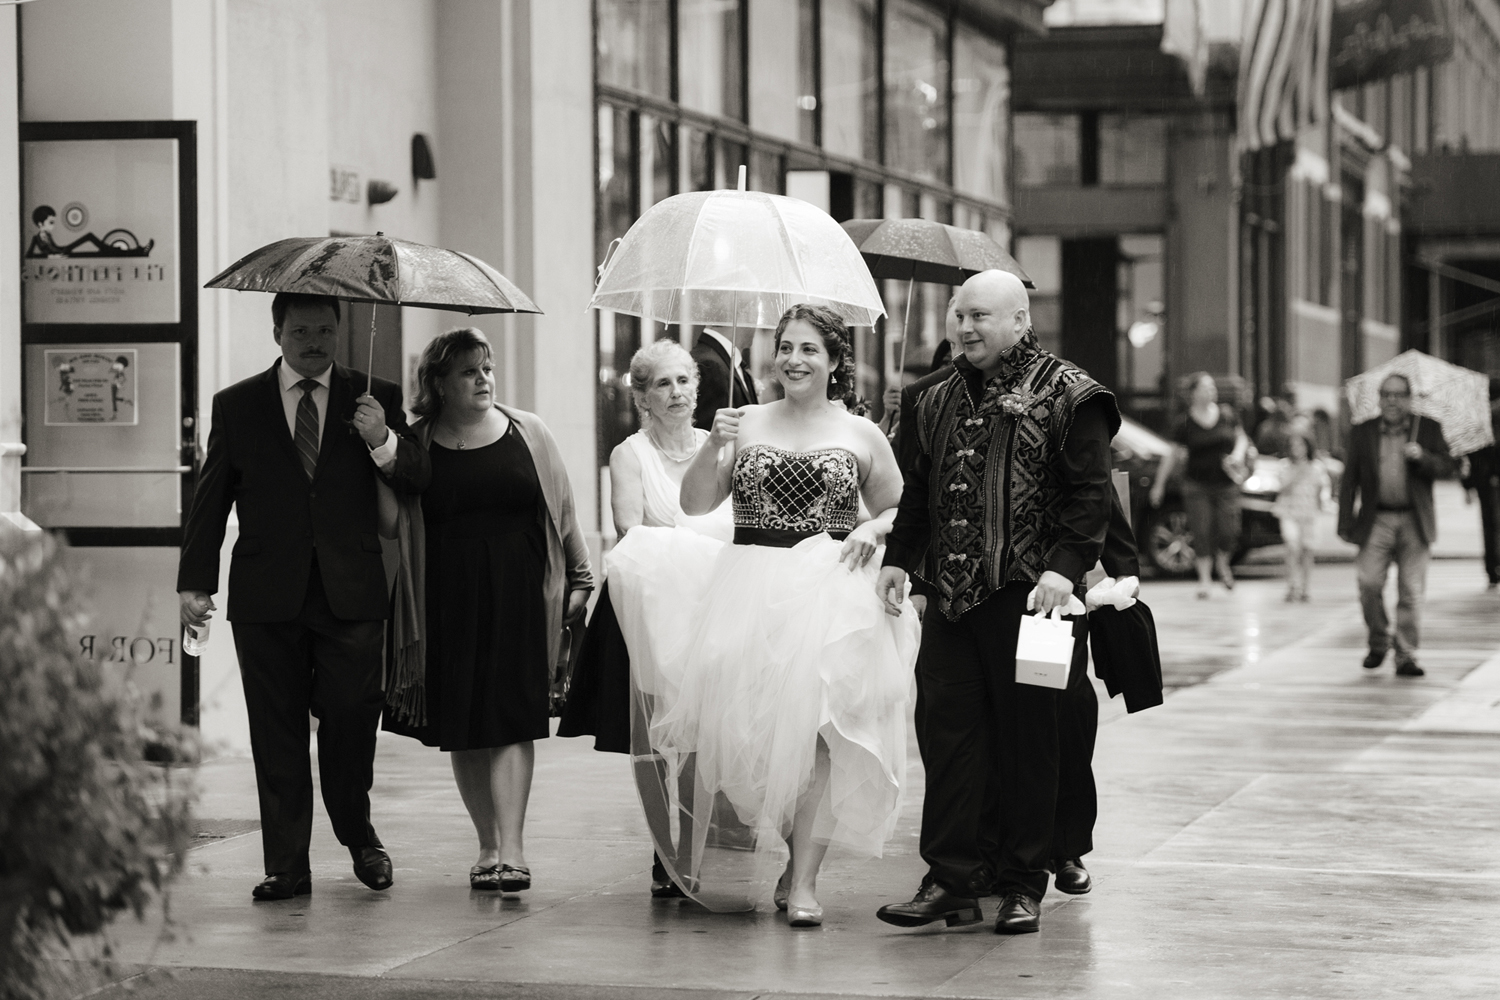 rainy wedding day in NYC. NYC wedding photographers